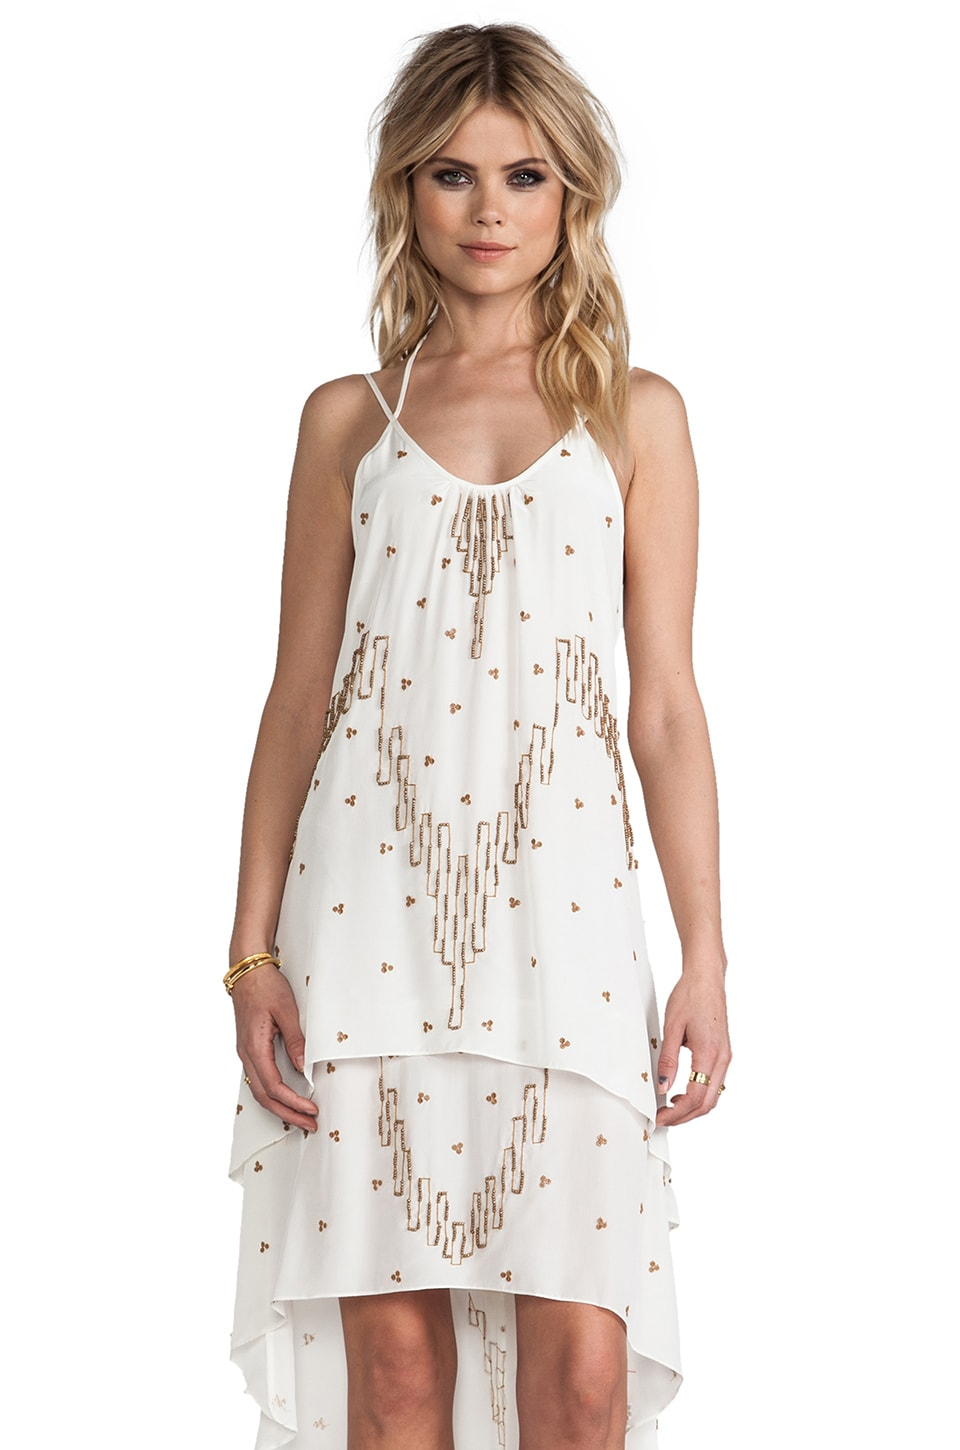 Plenty by Tracy Reese Tent Tank Dress in Ivory/Adobe